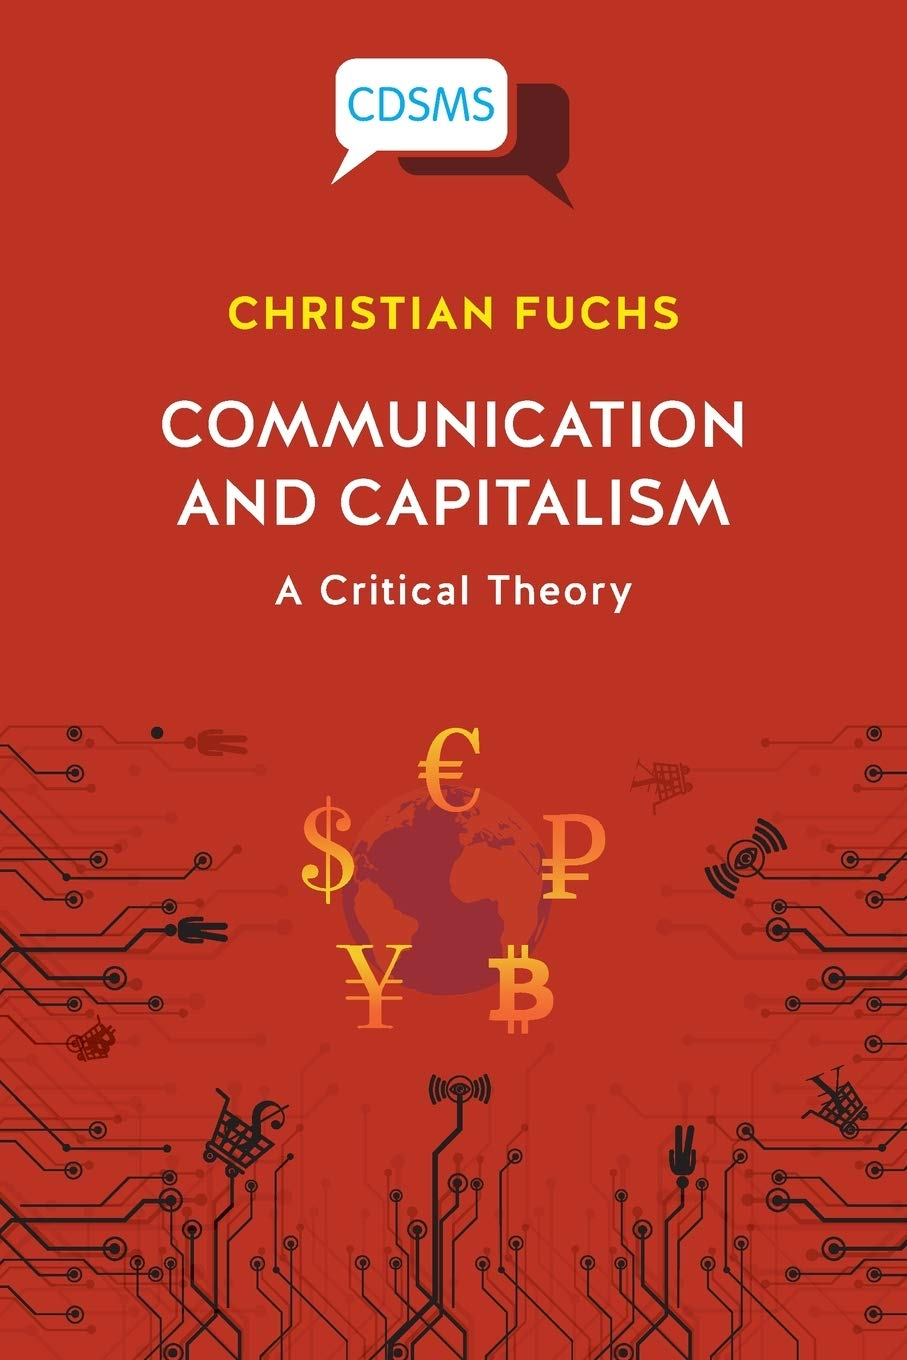 Communication and Capitalism: A Critical Theory